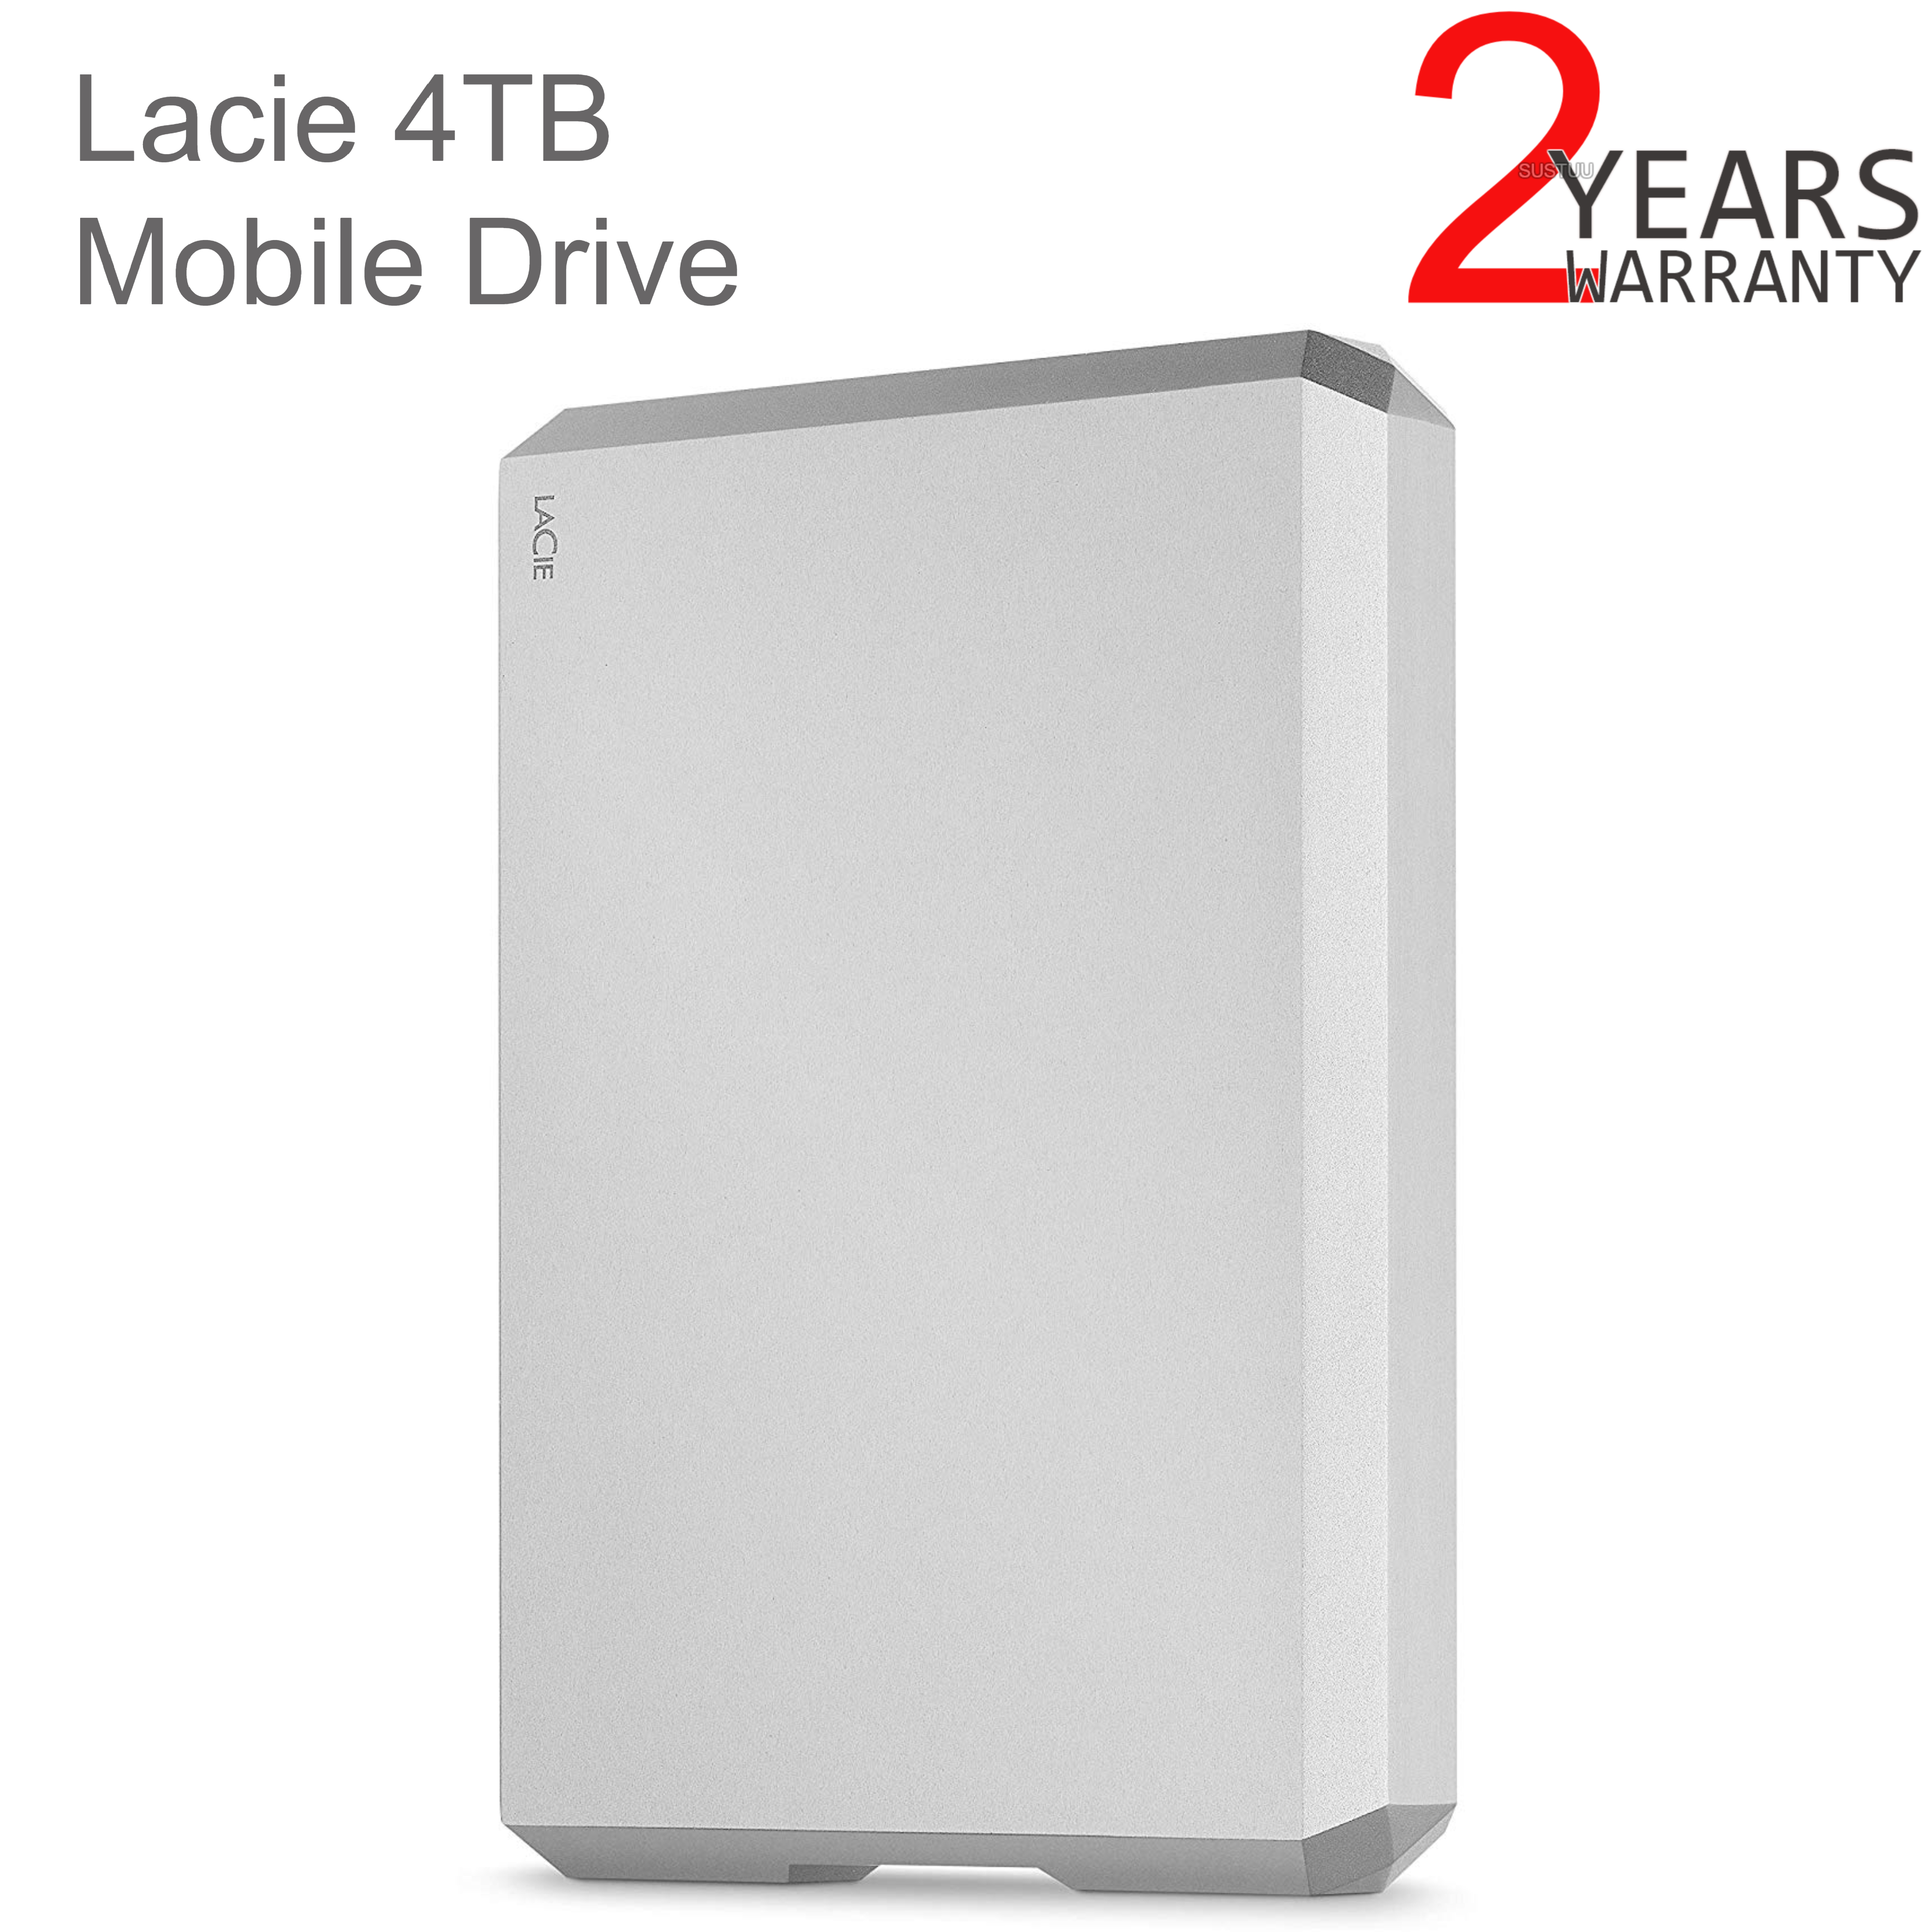 Lacie 4TB Mobile Drive | USB 3.0 Type-C Portable External Hard Drive | For PC & Mac | Storage